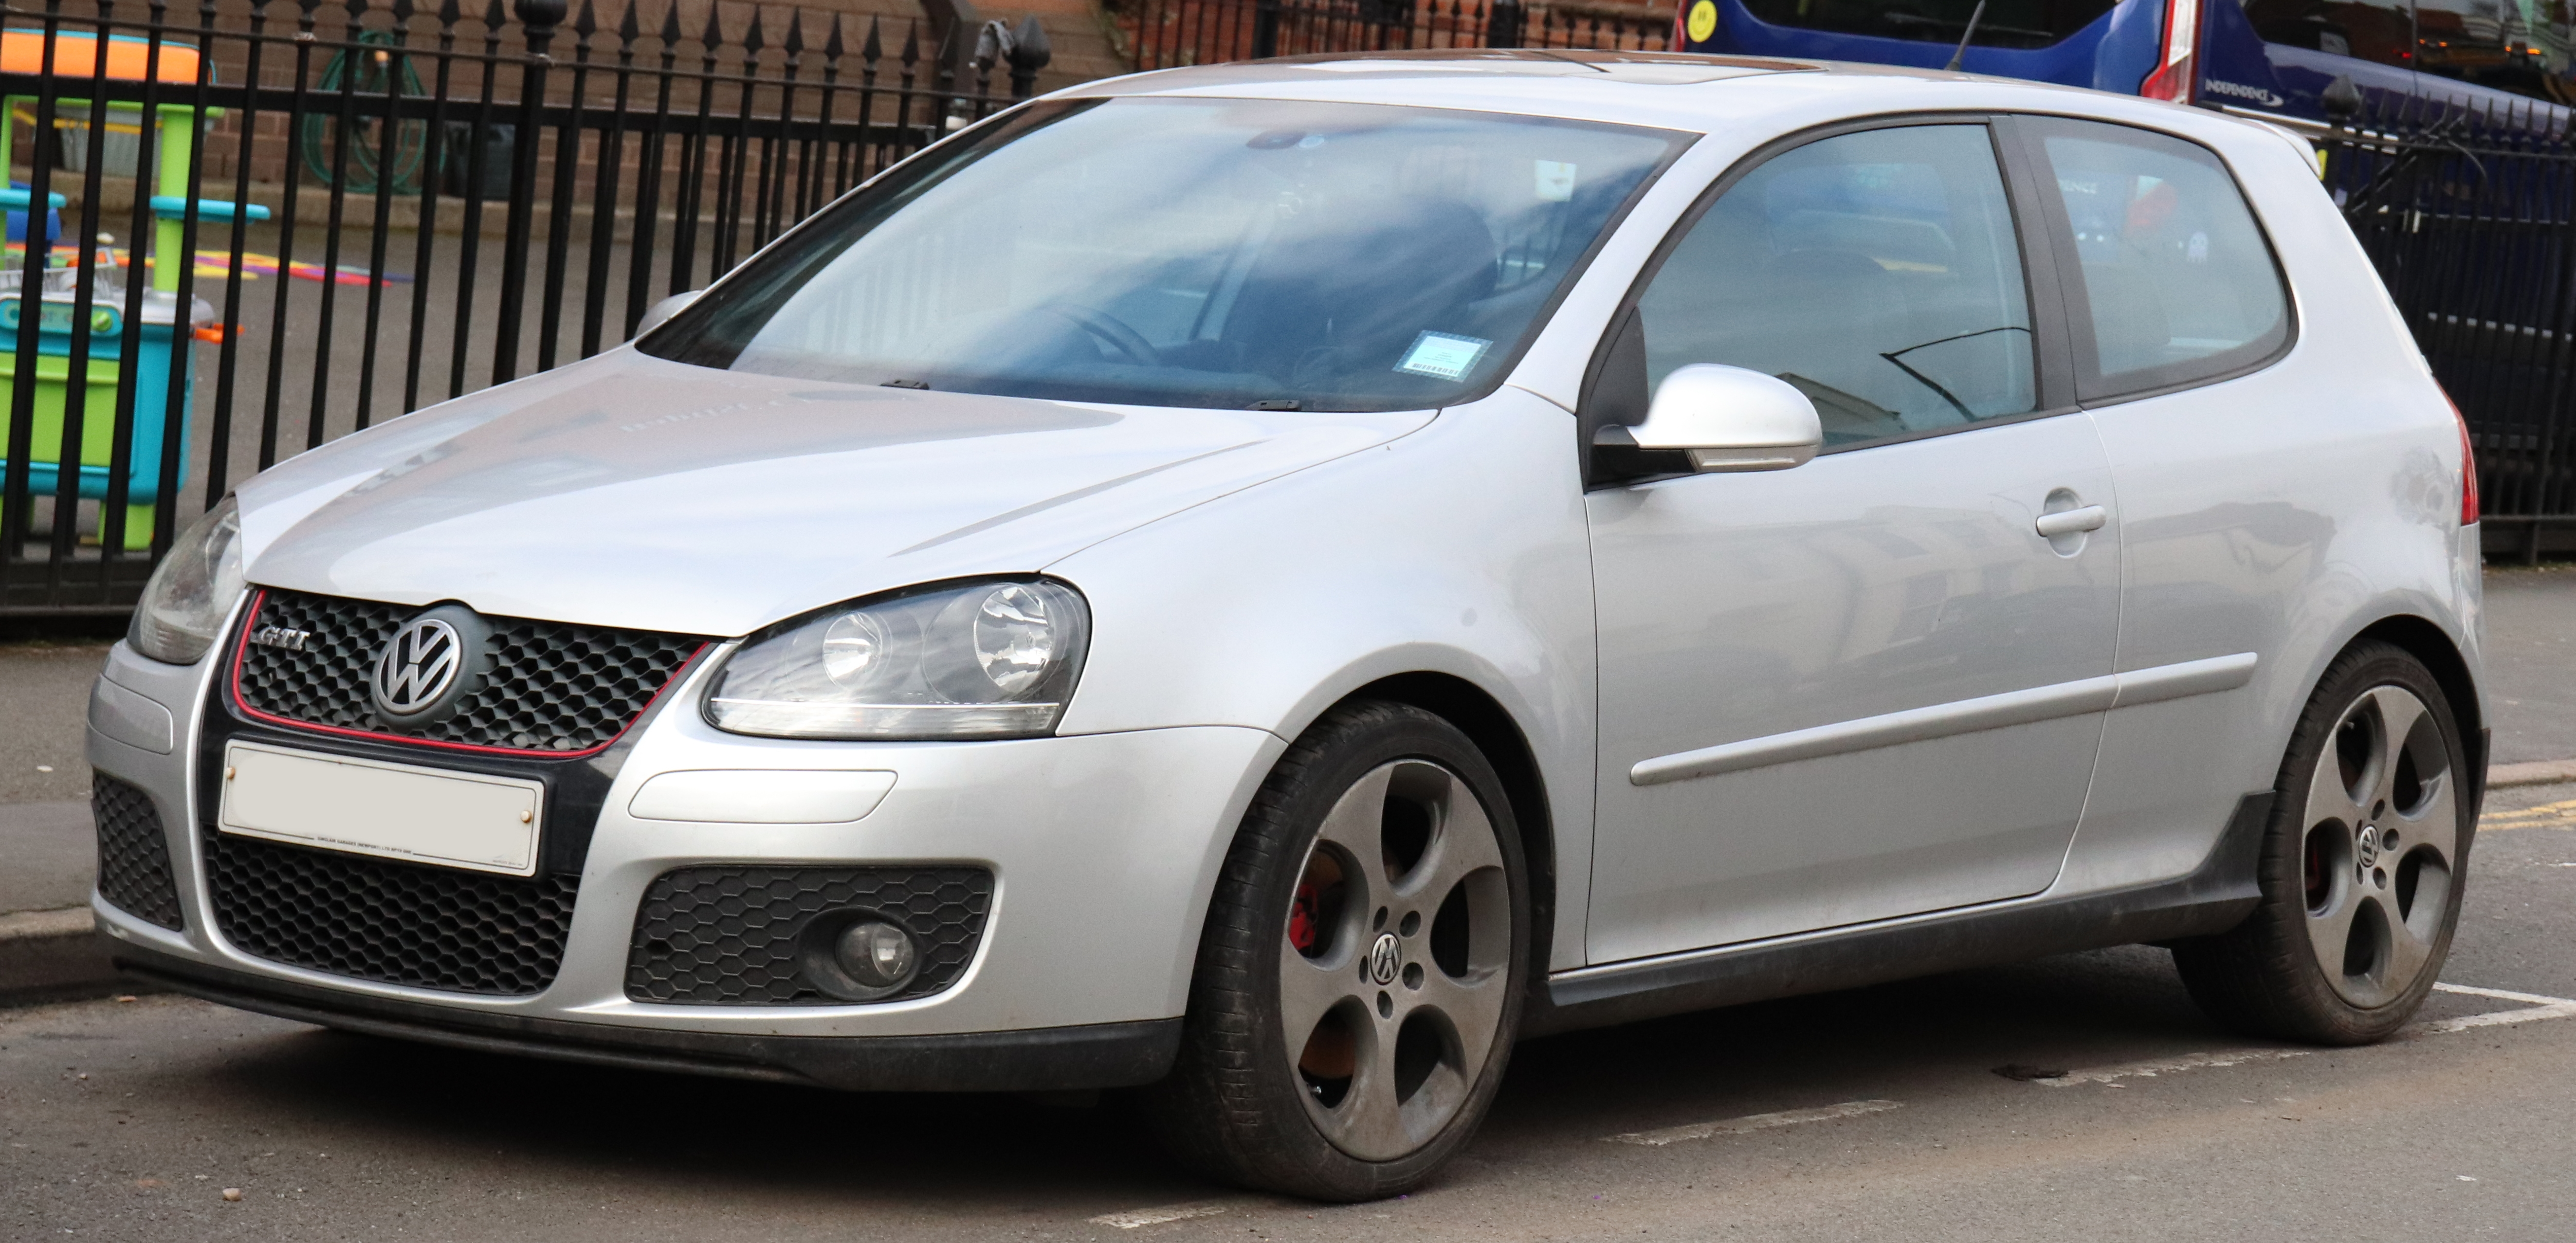 What Does Gti Stand For >> Vdub Wikipedia